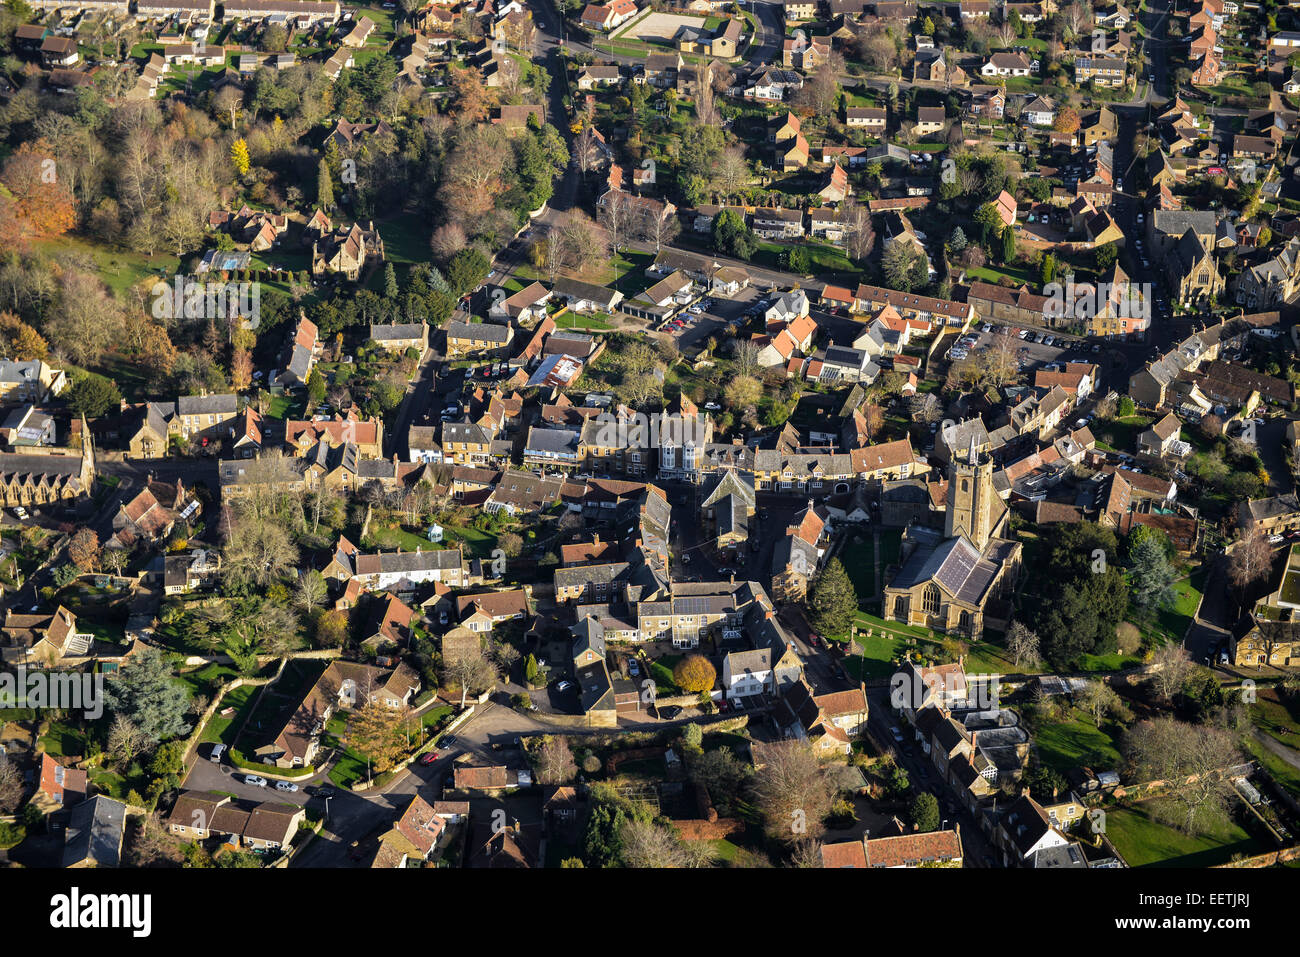 An aerial view showing the centre of the Somerset village of South Petherton - Stock Image